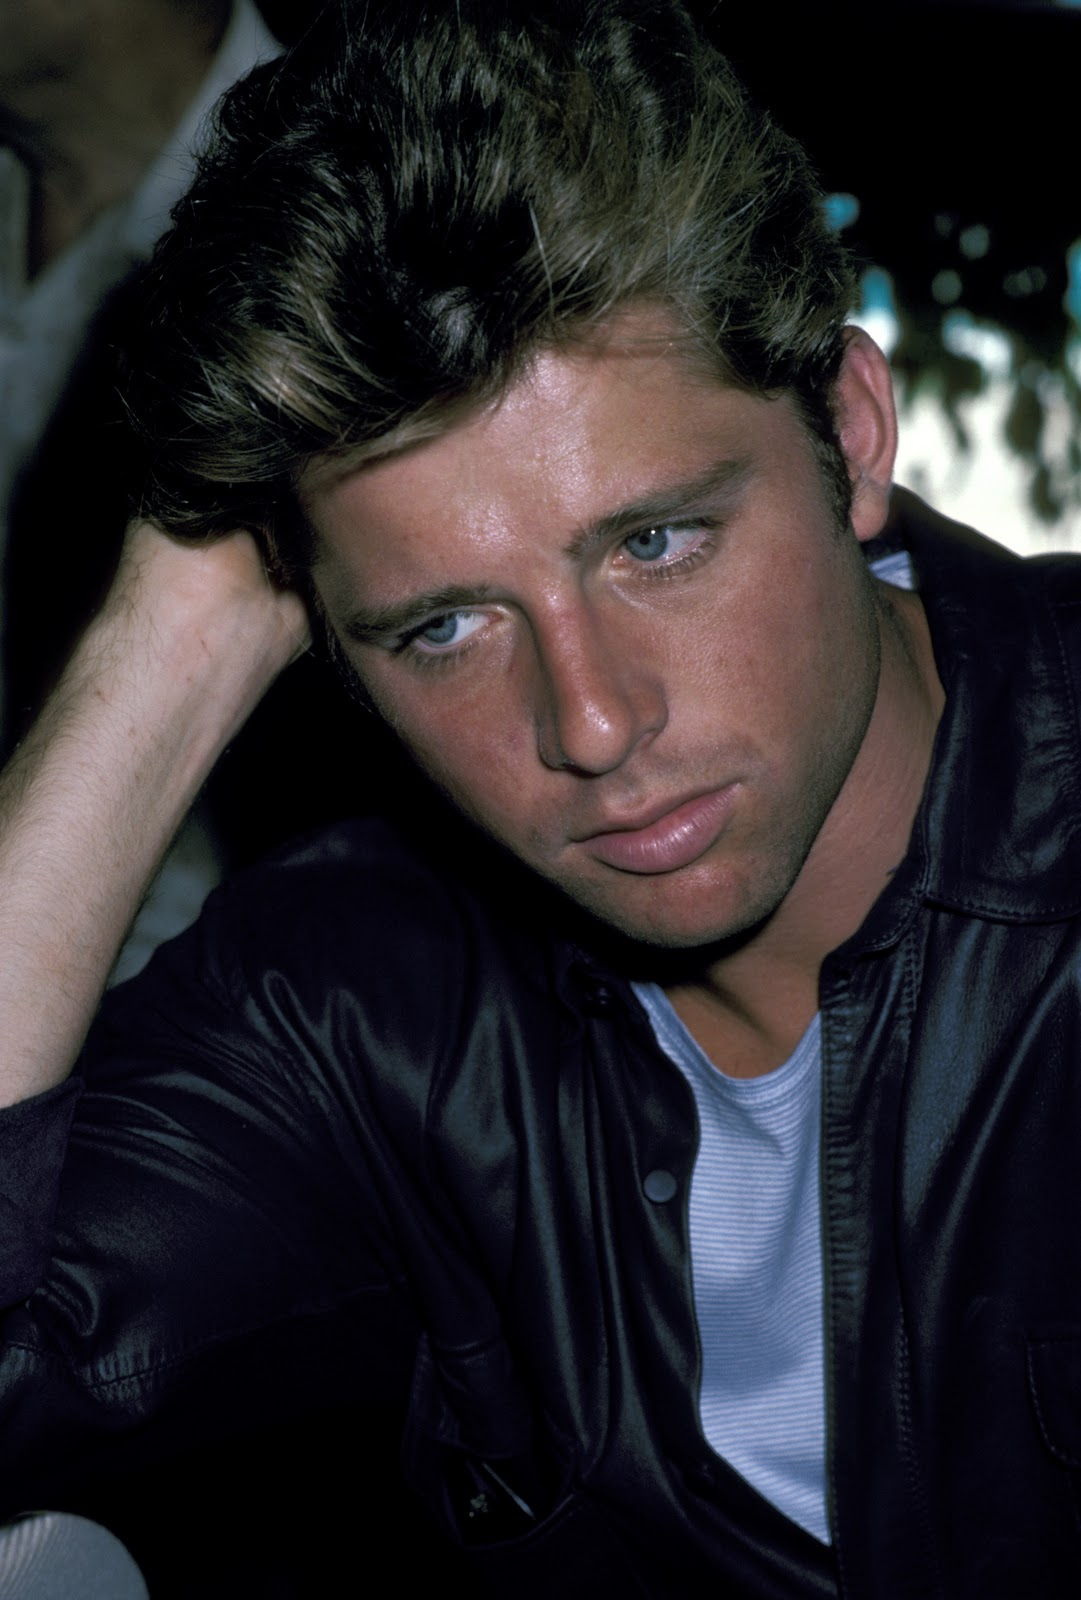 maxwell caulfield life is strangemaxwell caulfield twitter, maxwell caulfield, maxwell caulfield gay, maxwell caulfield young, maxwell caulfield and michelle pfeiffer, maxwell caulfield wiki, maxwell caulfield actor, maxwell caulfield emmerdale, maxwell caulfield movies, maxwell caulfield age, maxwell caulfield net worth, maxwell caulfield imdb, maxwell caulfield biografia español, maxwell caulfield images, maxwell caulfield biografia, maxwell caulfield life is strange, maxwell caulfield and juliet mills marriage